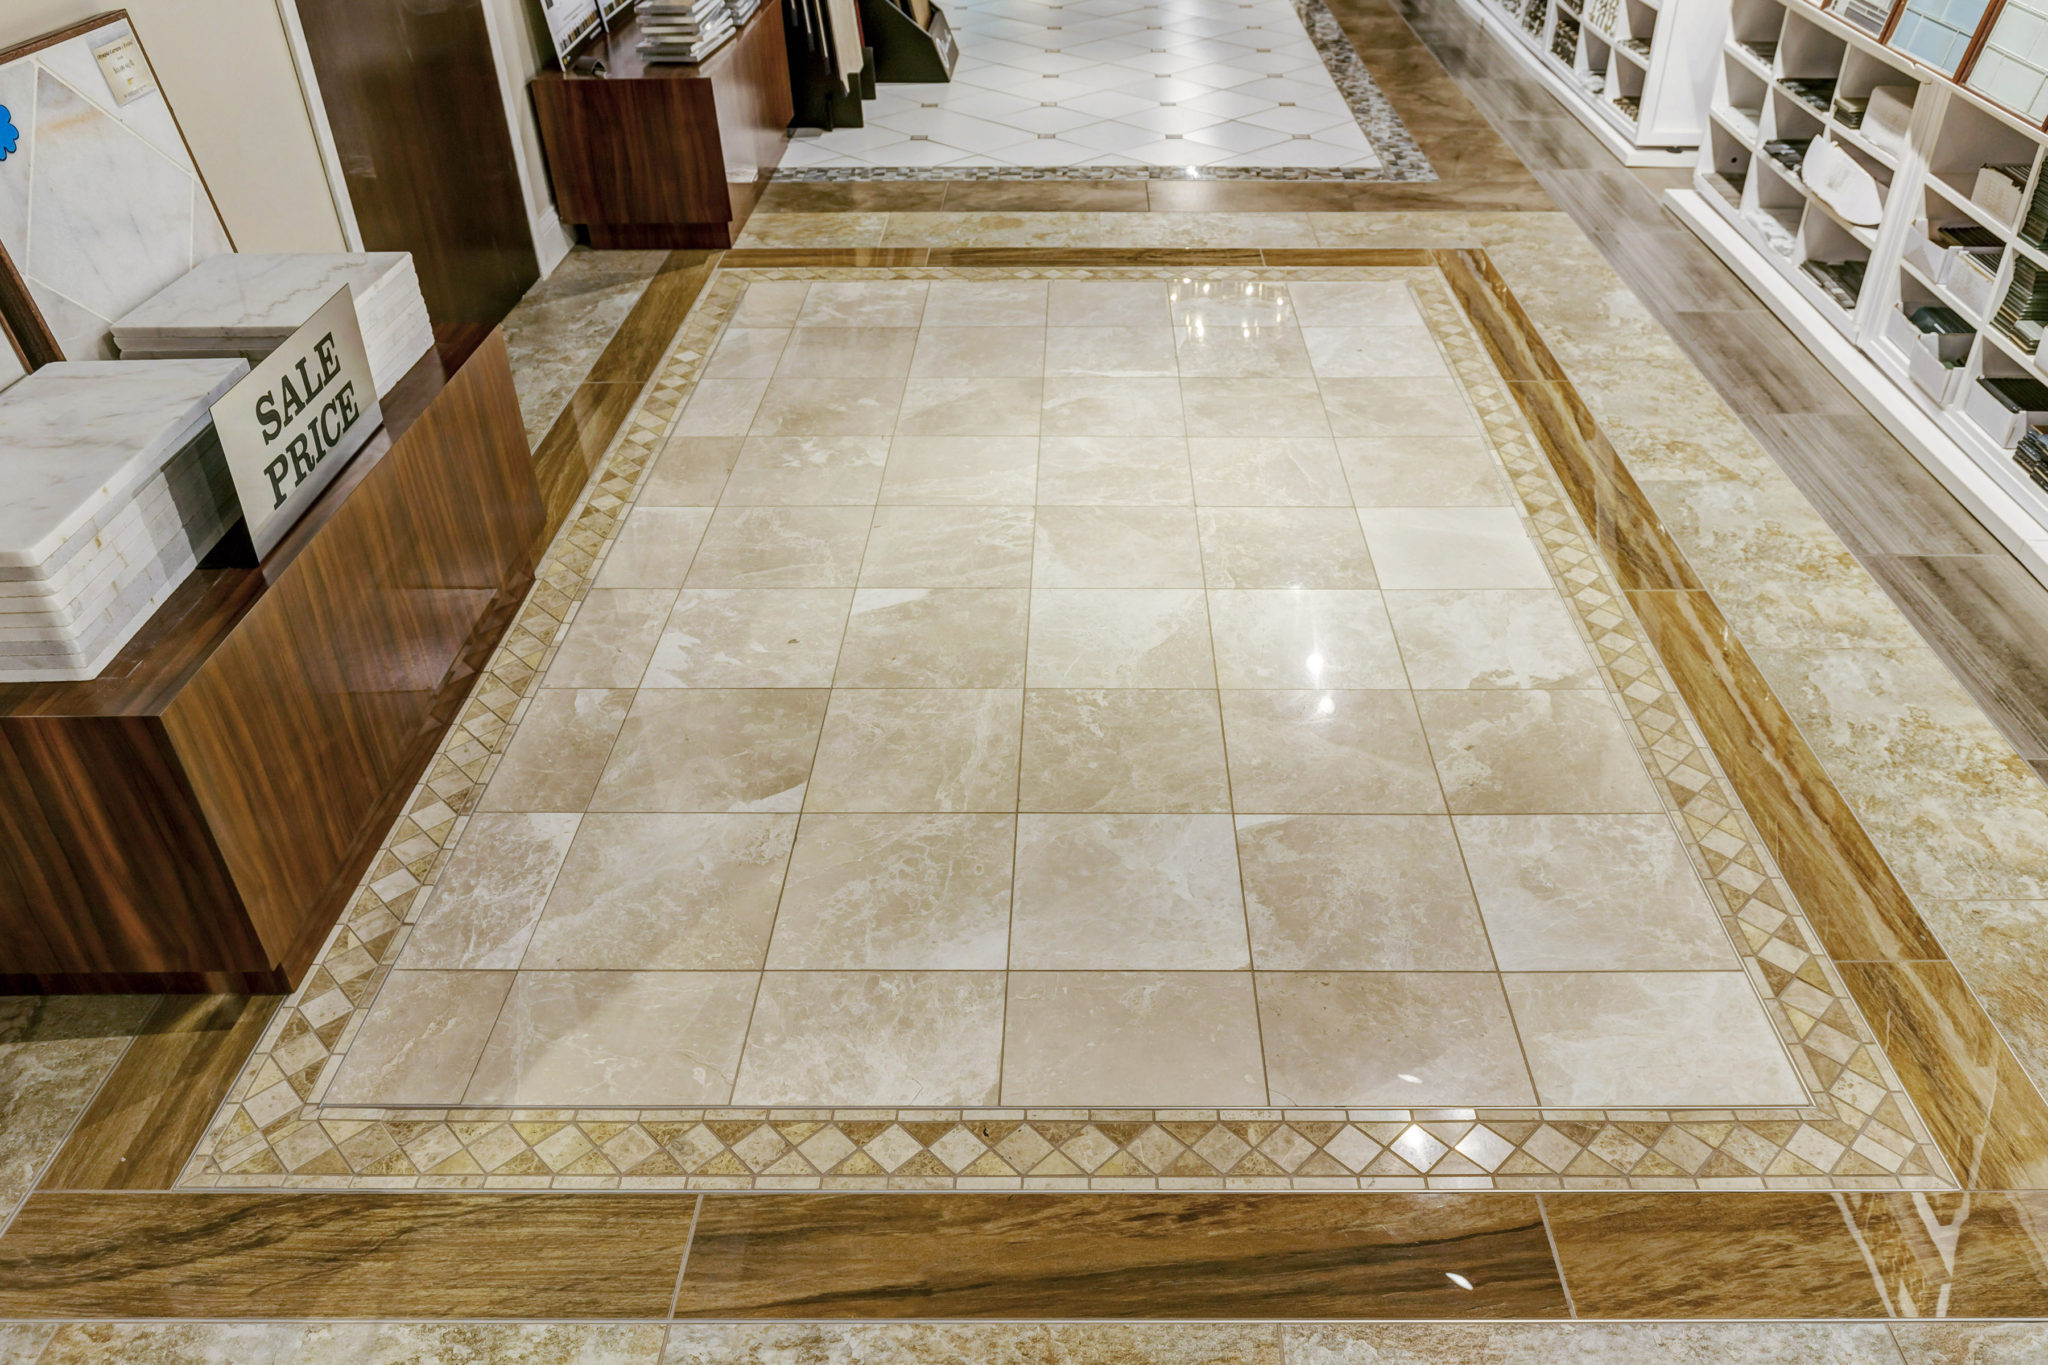 Ceramic Tile St Charles Come See Many Ceramic Tile Choices - Ceramic tile companies near me